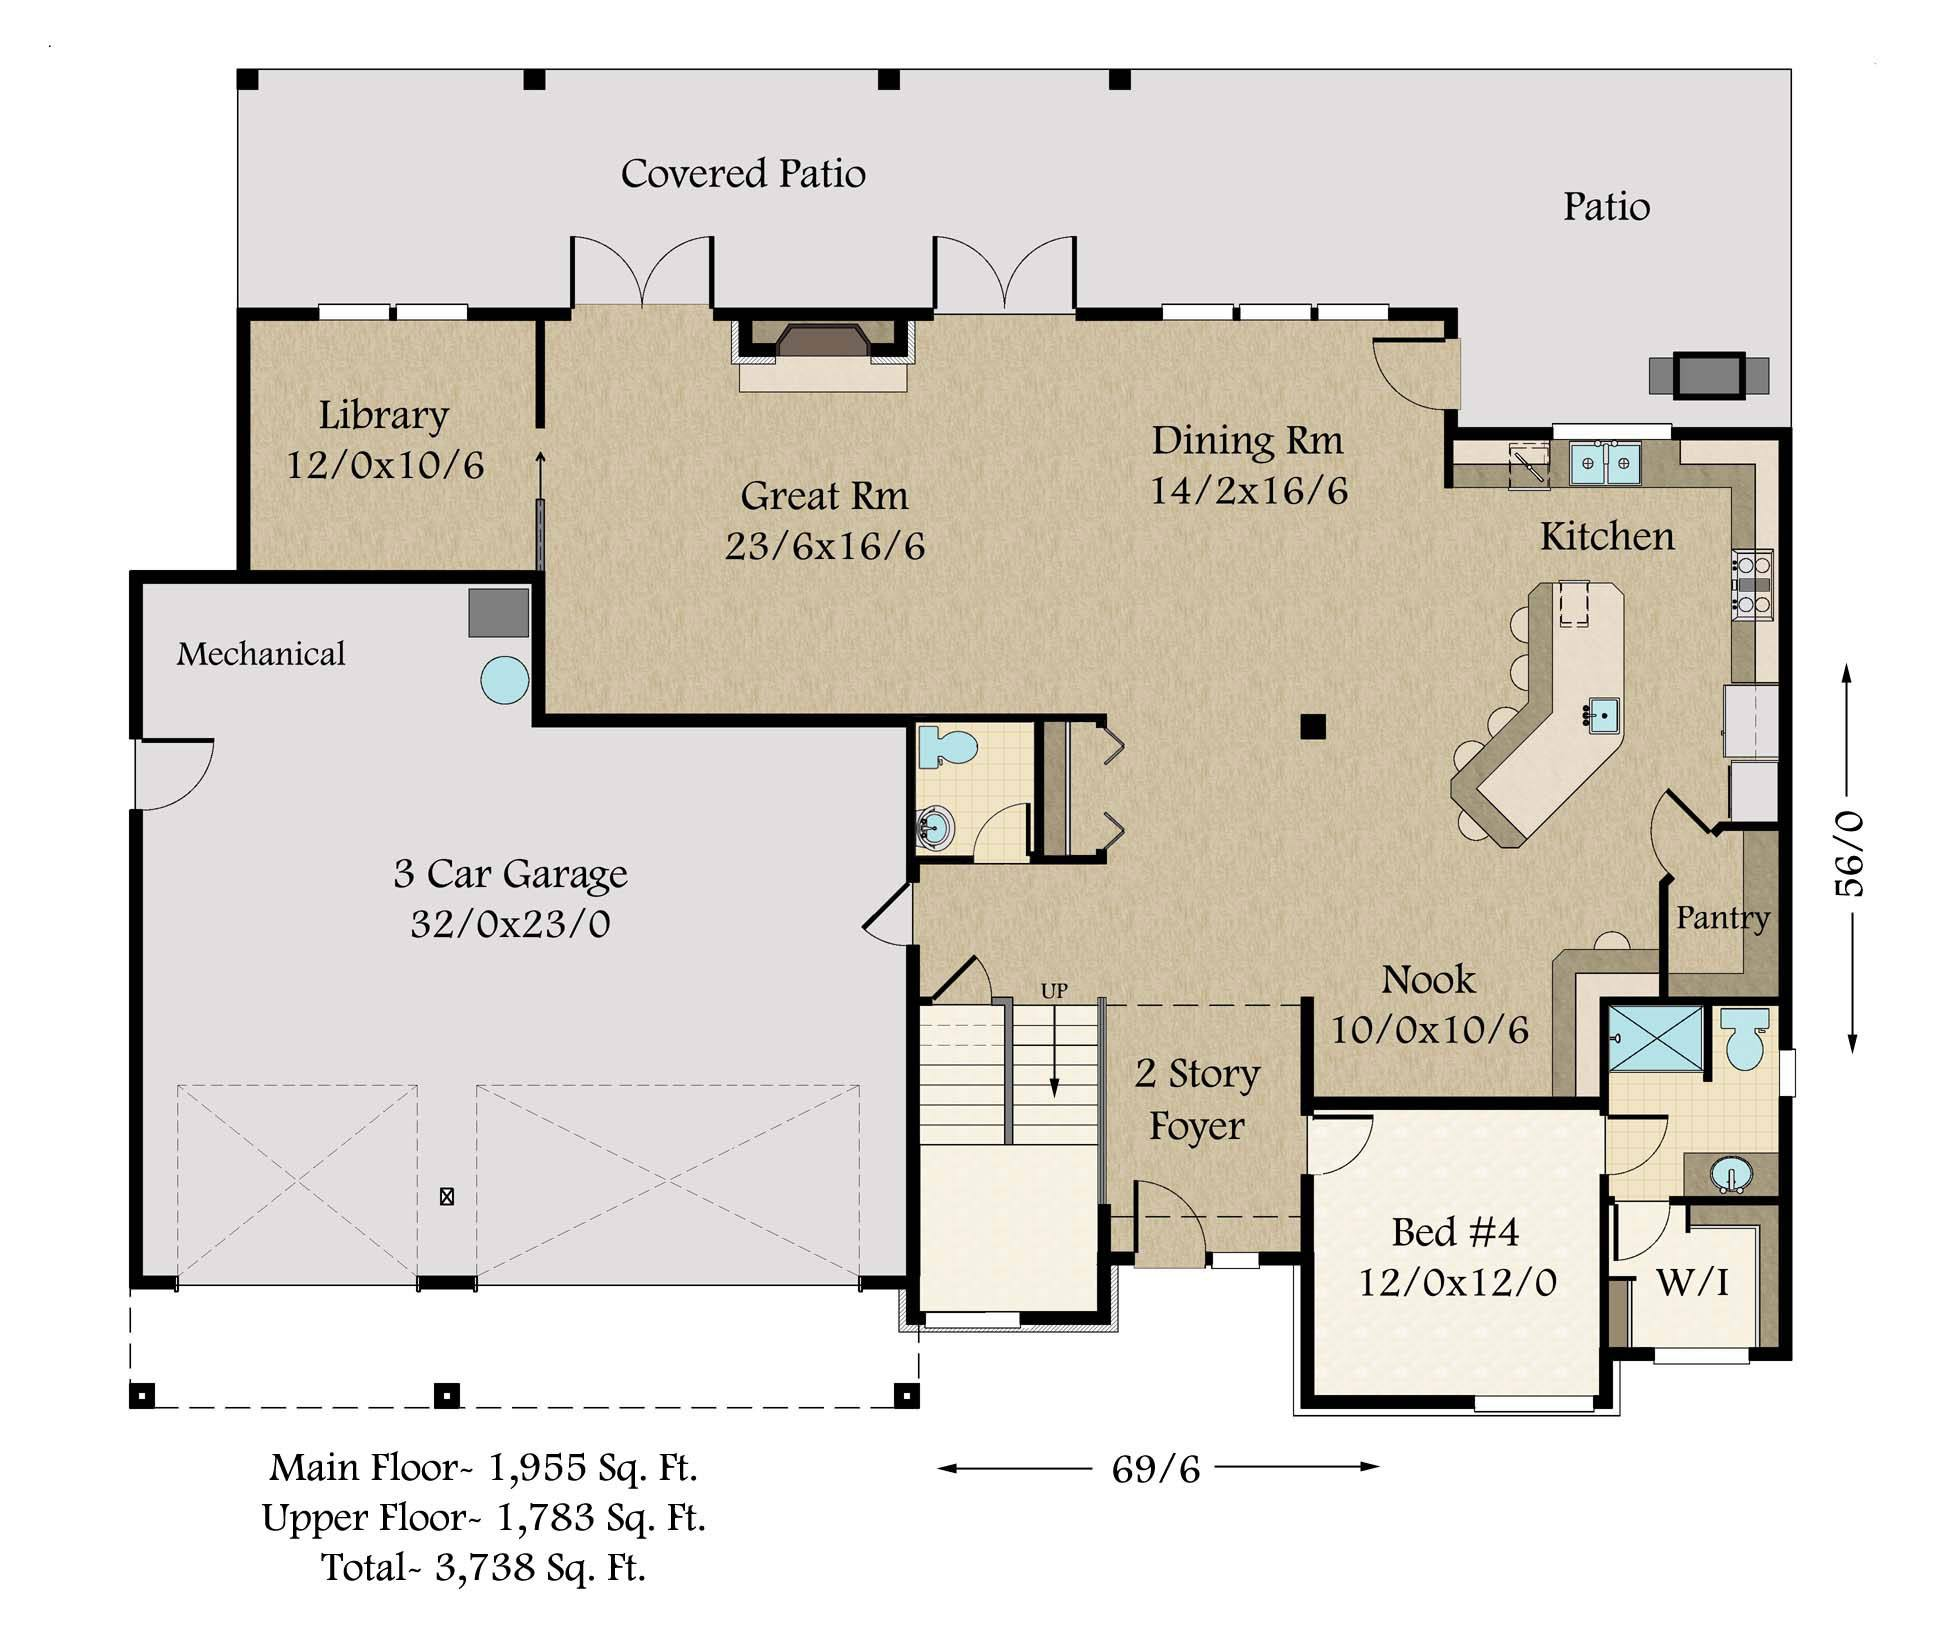 8000 sq ft house plans 28 images 8000 sq ft home floor for Floor plans 8000 square feet